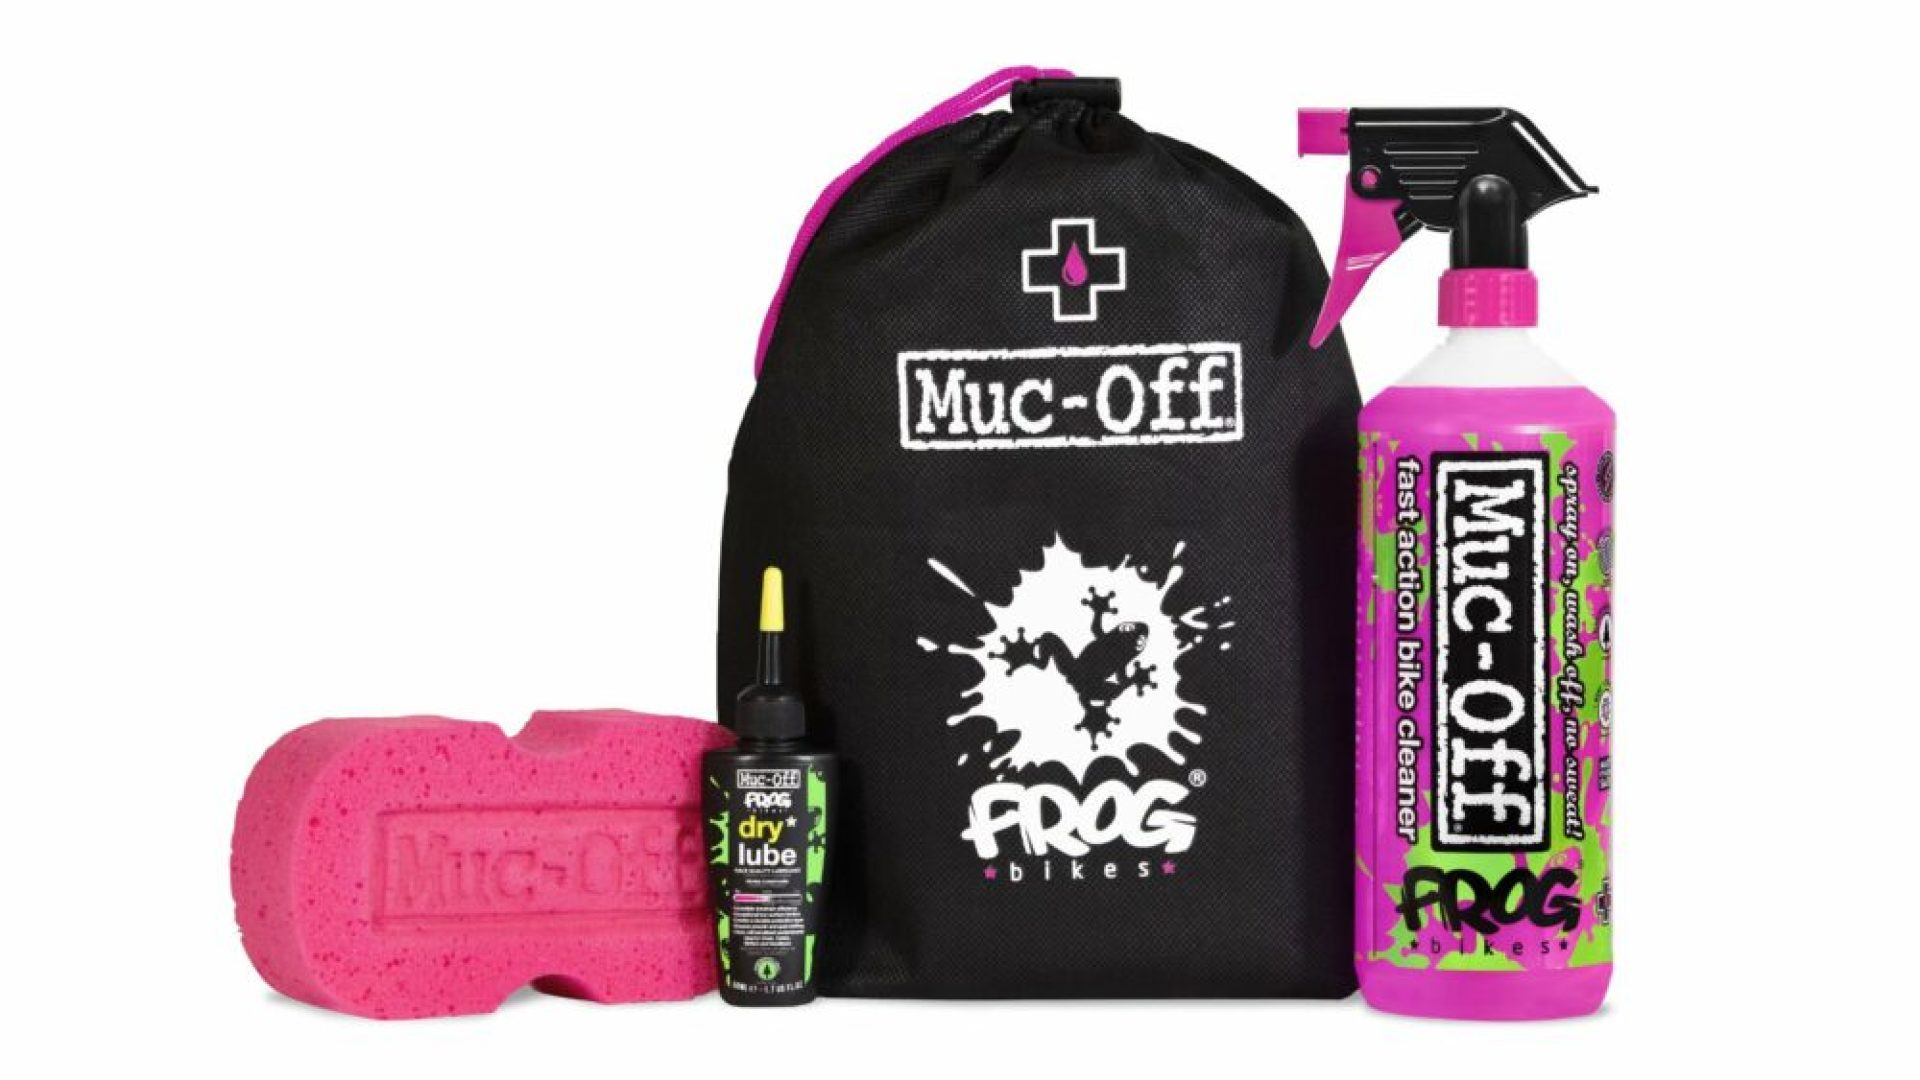 Bike Cleaning kit for kids from Frog Bikes and Muc-Off is a great Christmas gift for kids who like to cycle